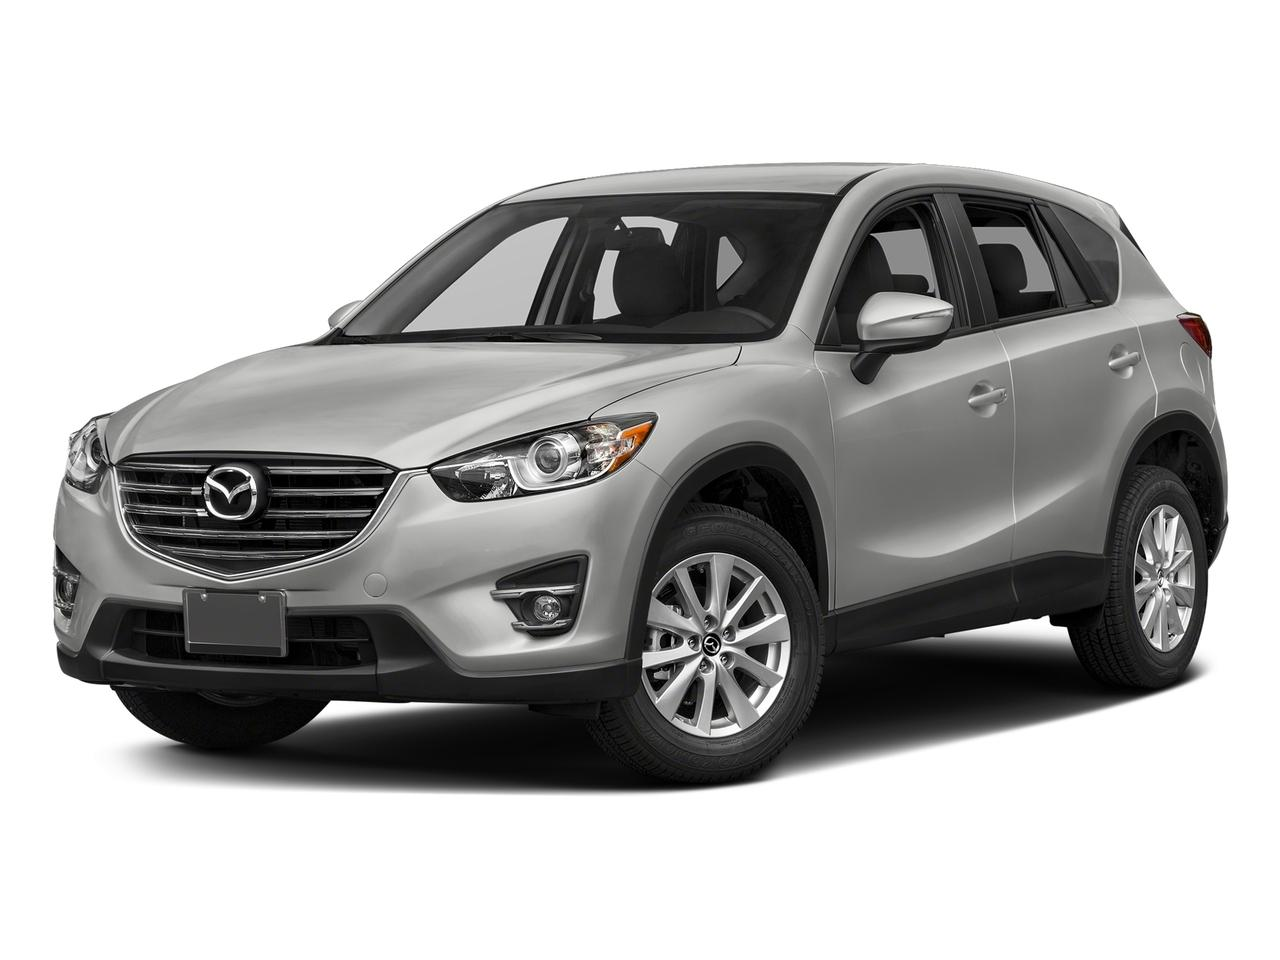 2016 Mazda CX-5 Vehicle Photo in Pittsburgh, PA 15226